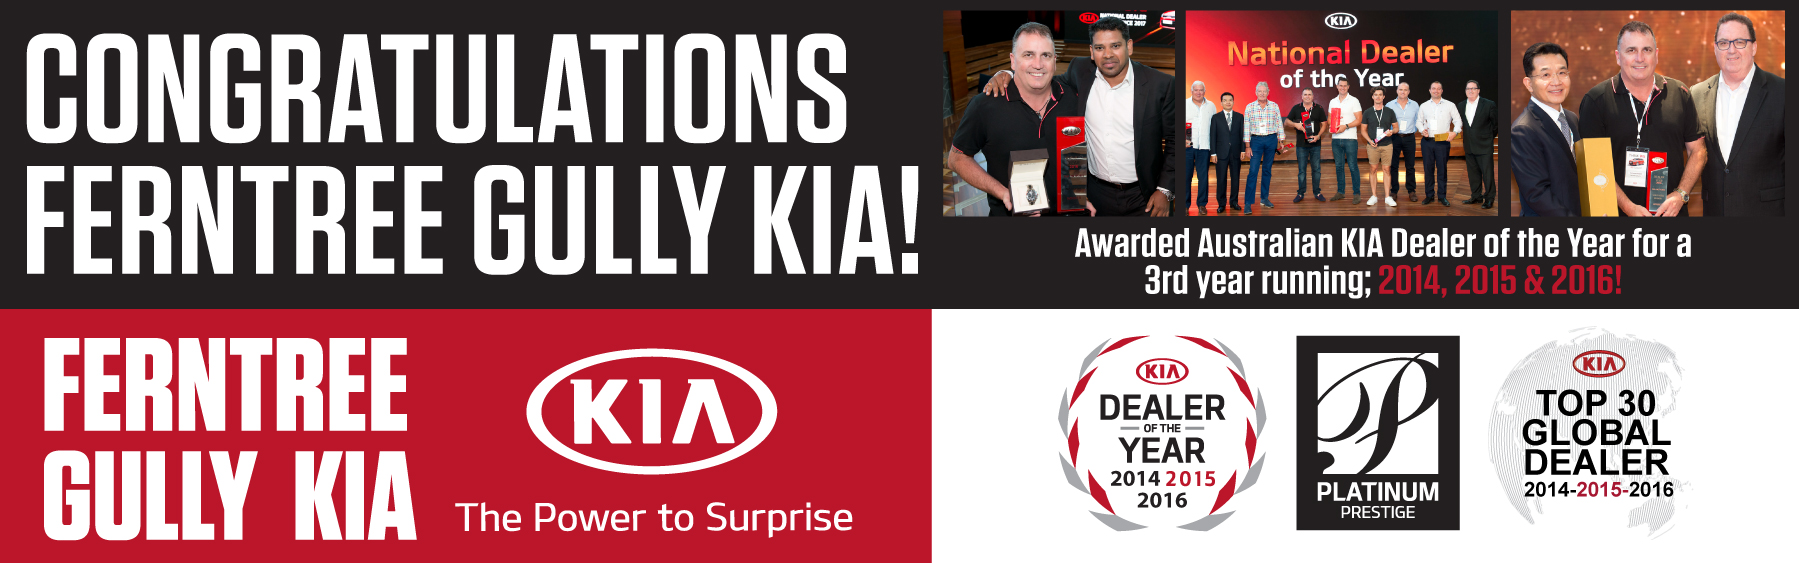 Ferntree Gully Kia >> Summary Ferntree Gully Kia Ferntree Gully Kia Recently We Were